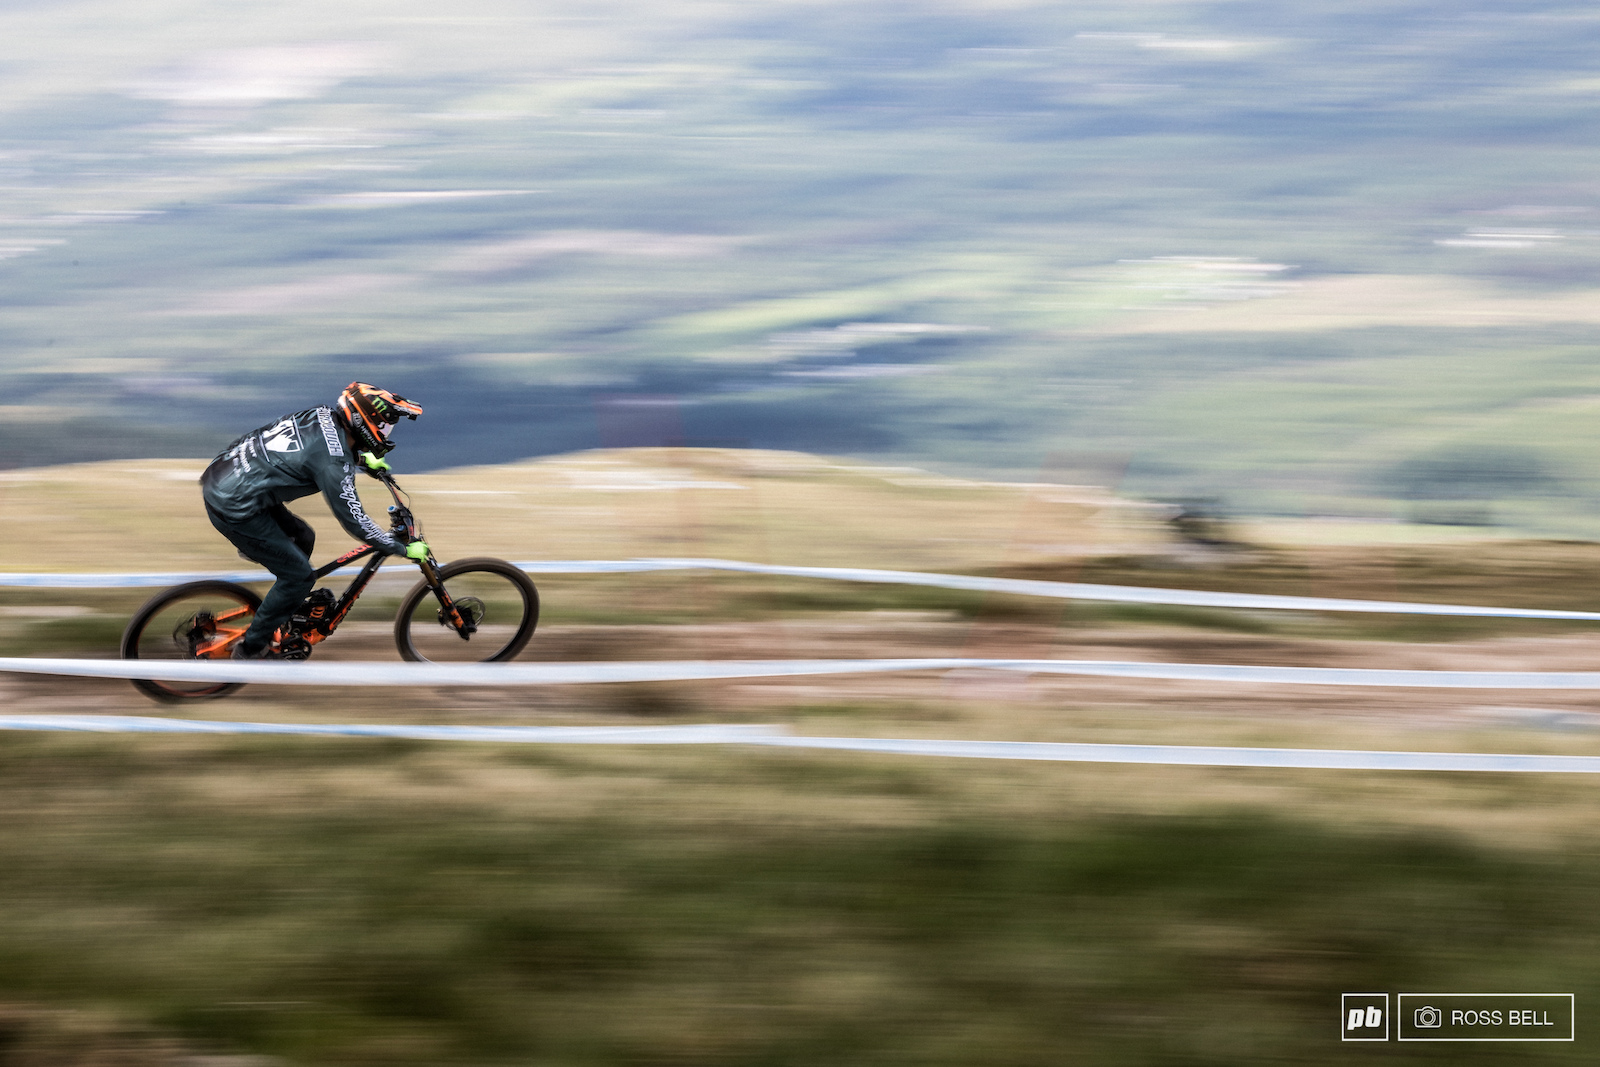 After all the hype surrounding the Deathgrip launch Brendan Fairclough turns his attention back to the track.